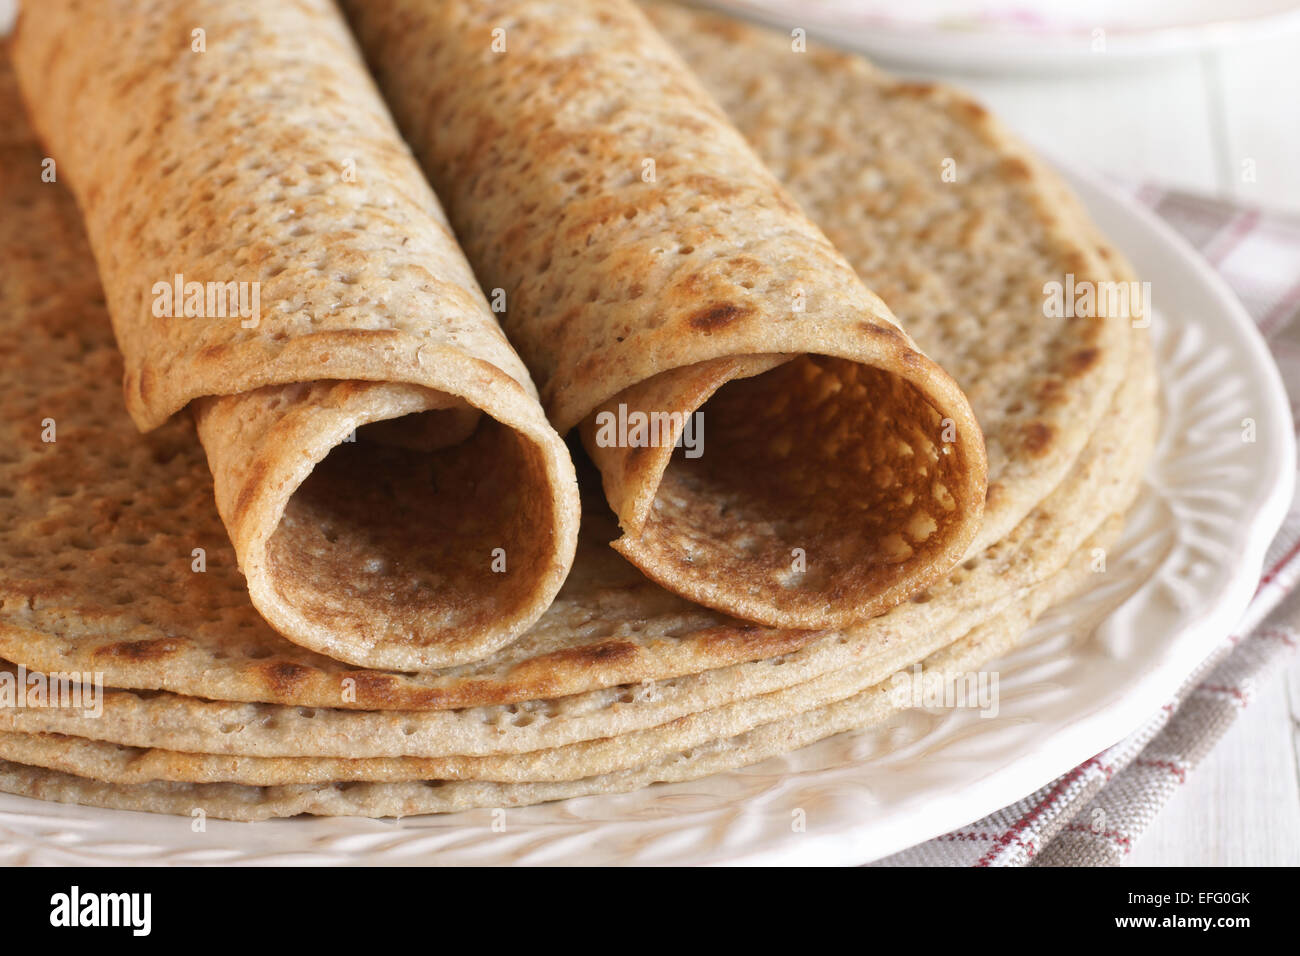 Staffordshire Oatcakes a savoury oatmeal pancake from the North Staffordshire area of England, specifically Stoke - Stock Image